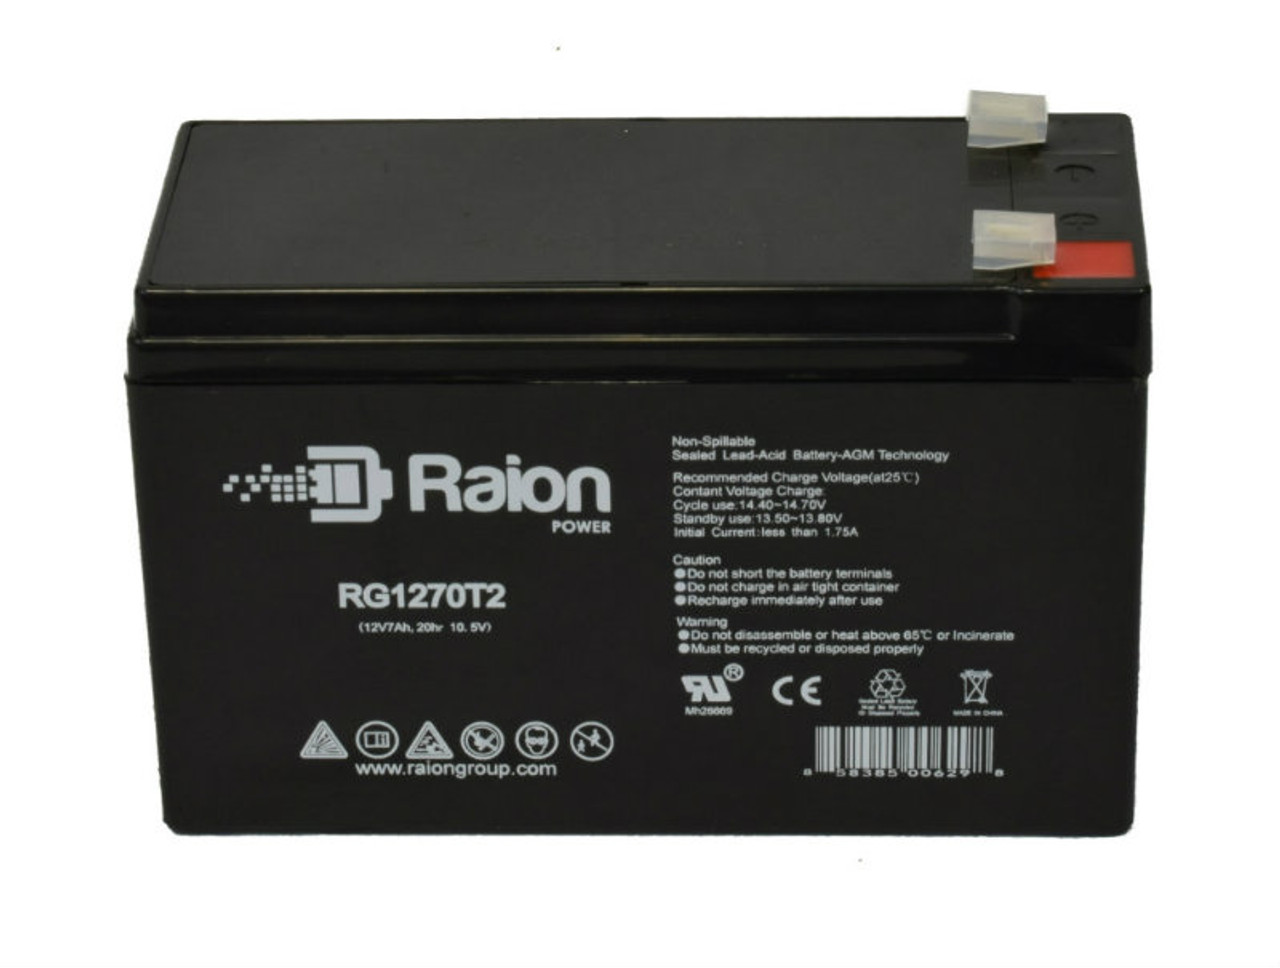 Raion Power 12V 7Ah SLA Battery With T1 Terminals For Sentry Battery PM1285